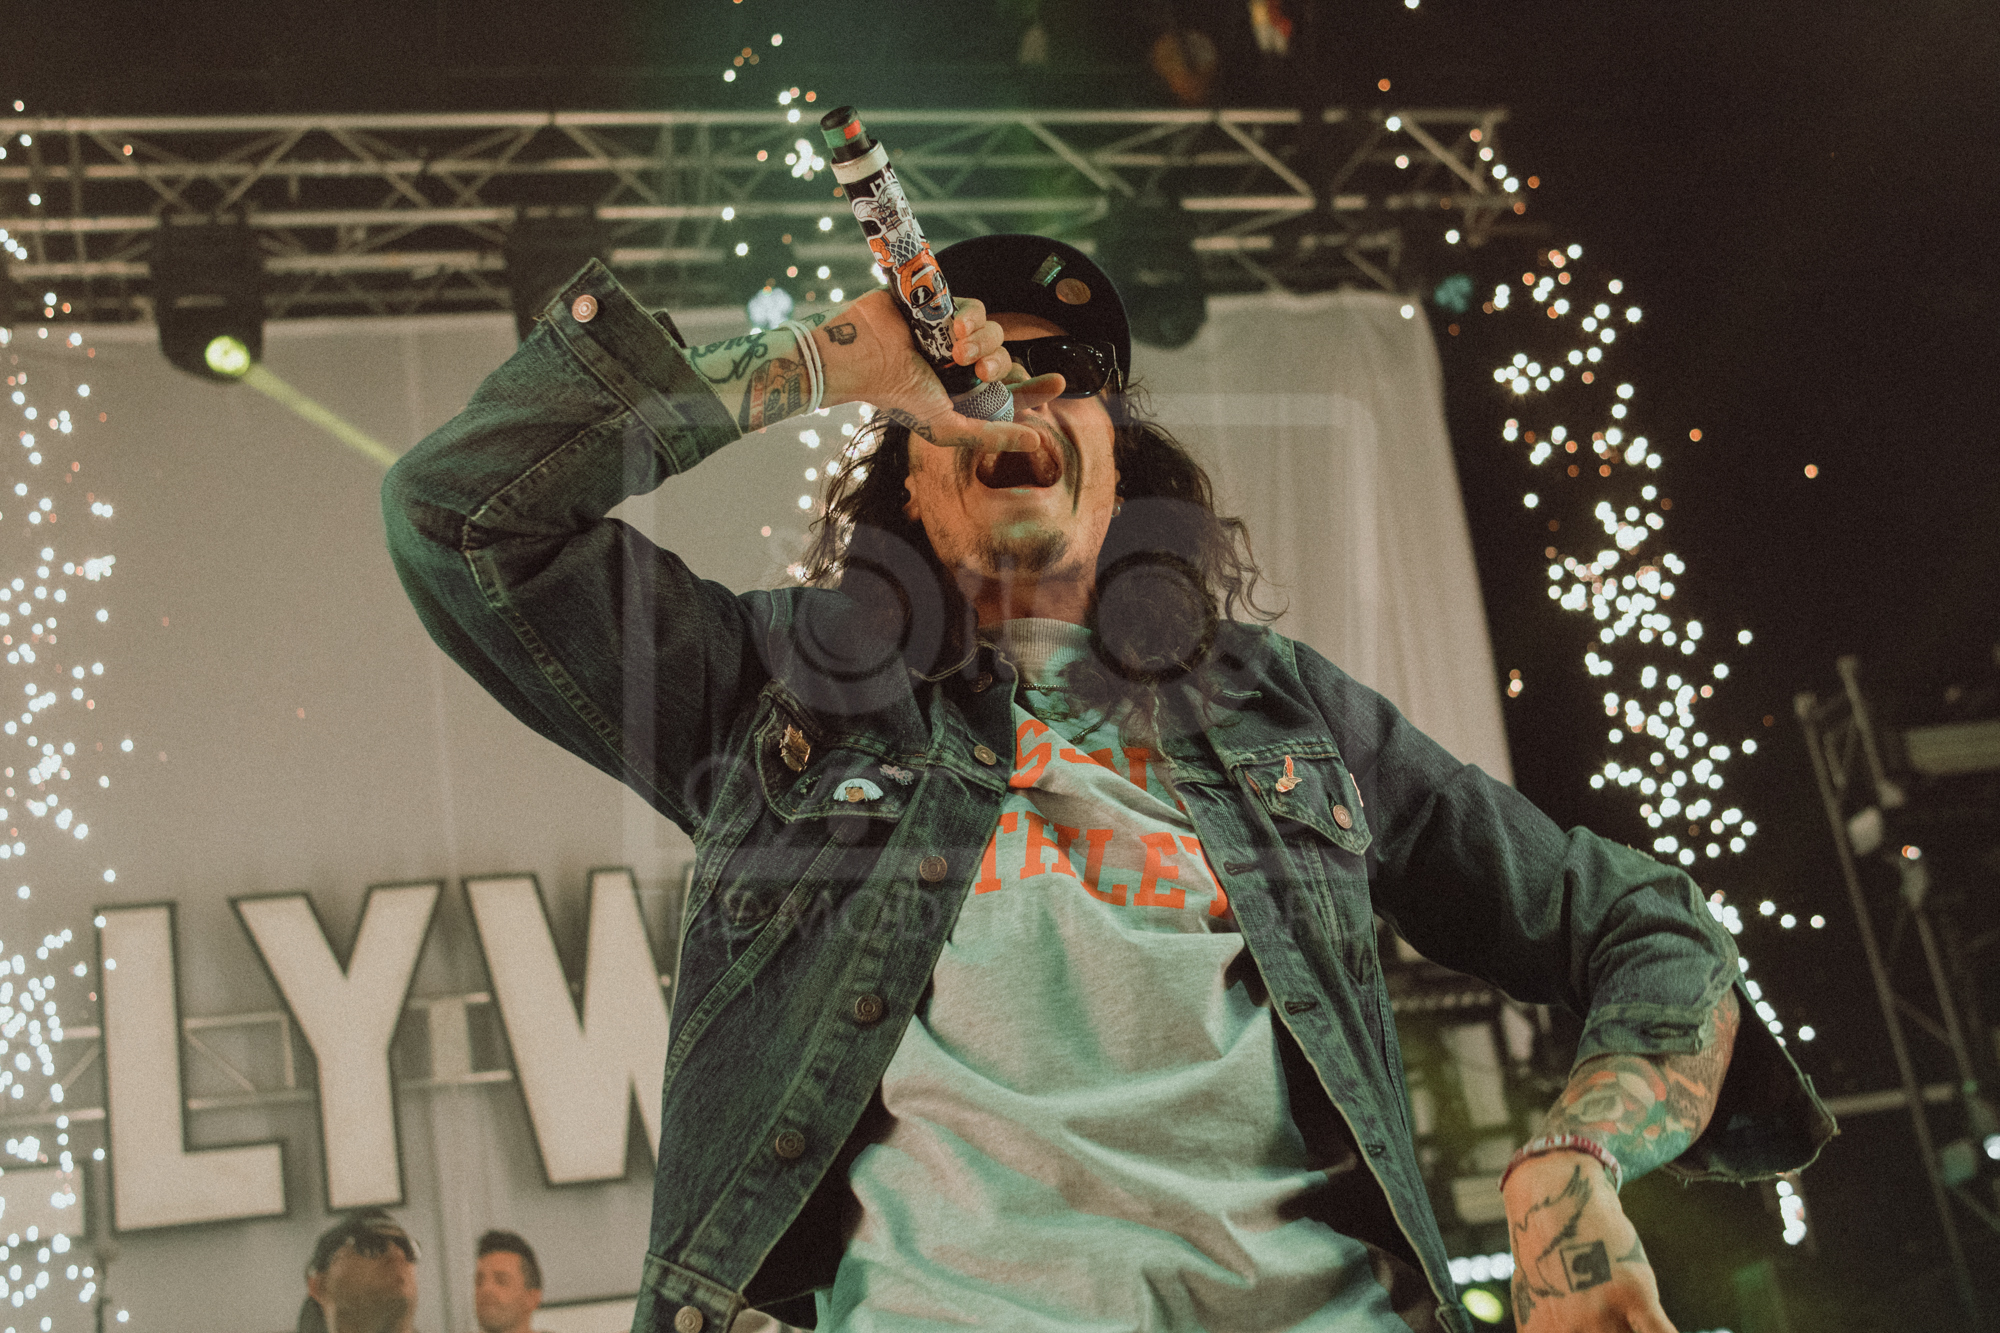 Hollywood Undead - 01.05.19 - PICTURE BY WILL GORMAN PHOTOGRAPHY-2869.JPG